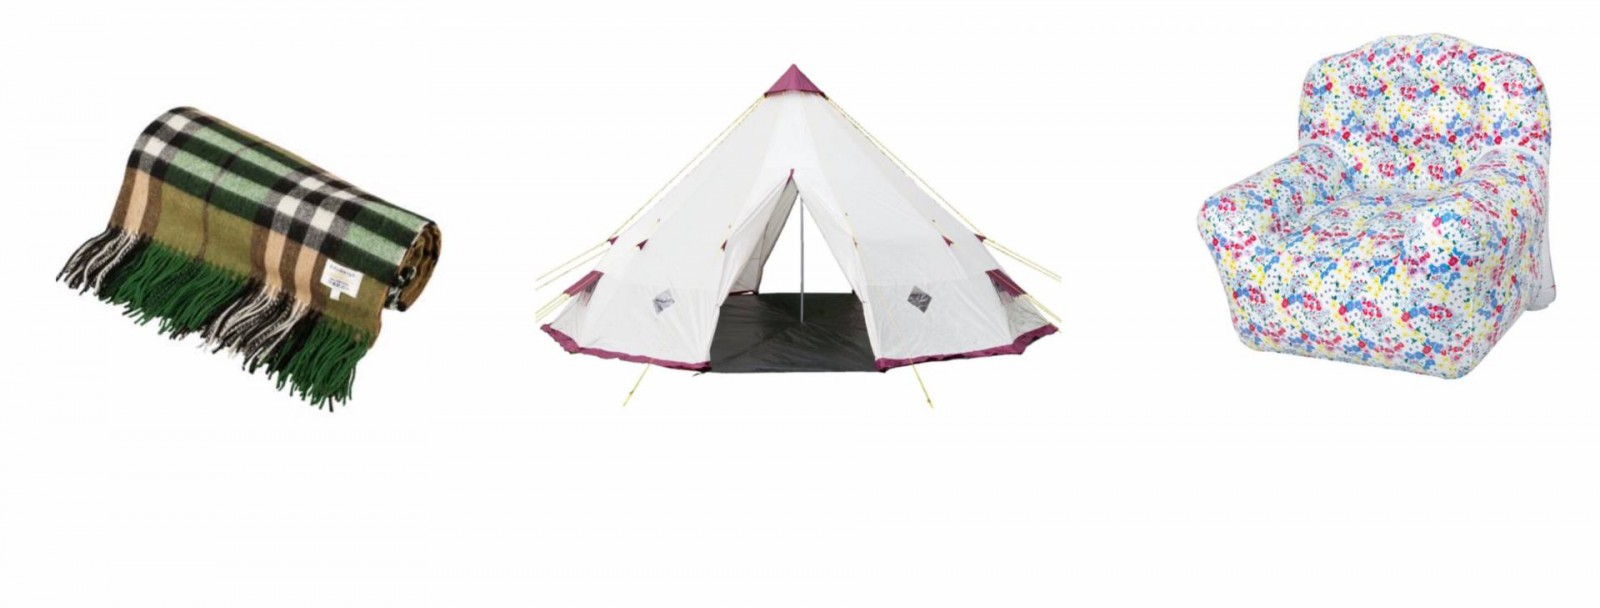 If you're not a happy camper why not give glamping a go this festival and camping season with this yummy mummy galloping checklist